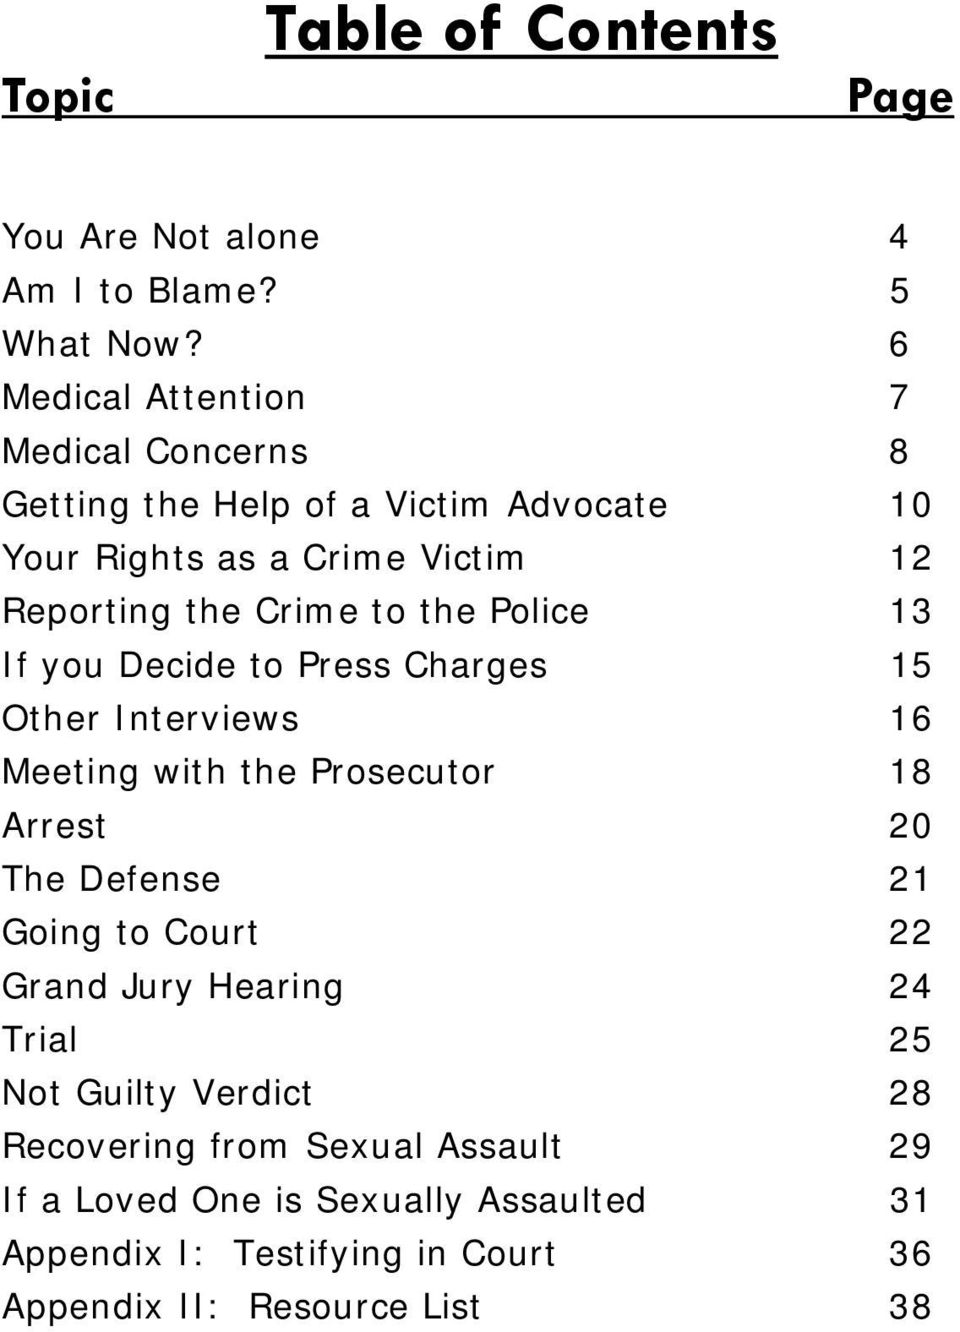 to the Police 13 If you Decide to Press Charges 15 Other Interviews 16 Meeting with the Prosecutor 18 Arrest 20 The Defense 21 Going to